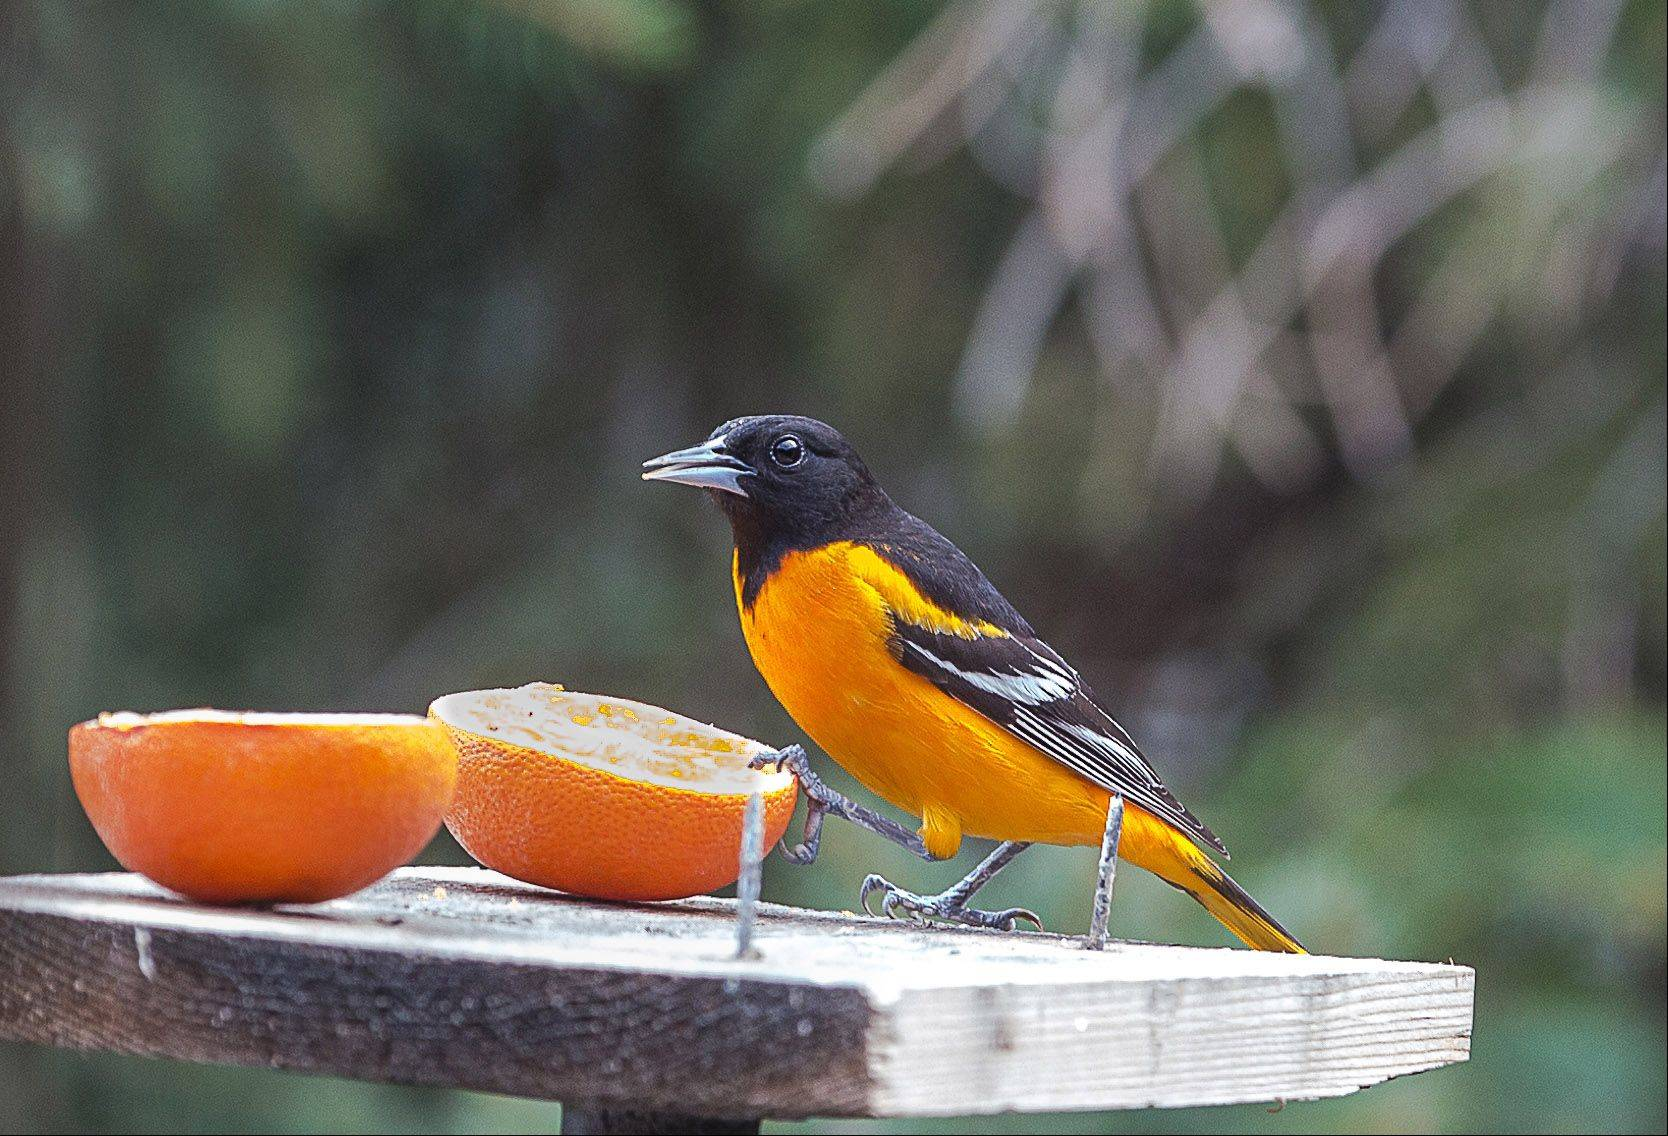 A male Oriole dines on oranges in an Ingleside backyard on April 30th.